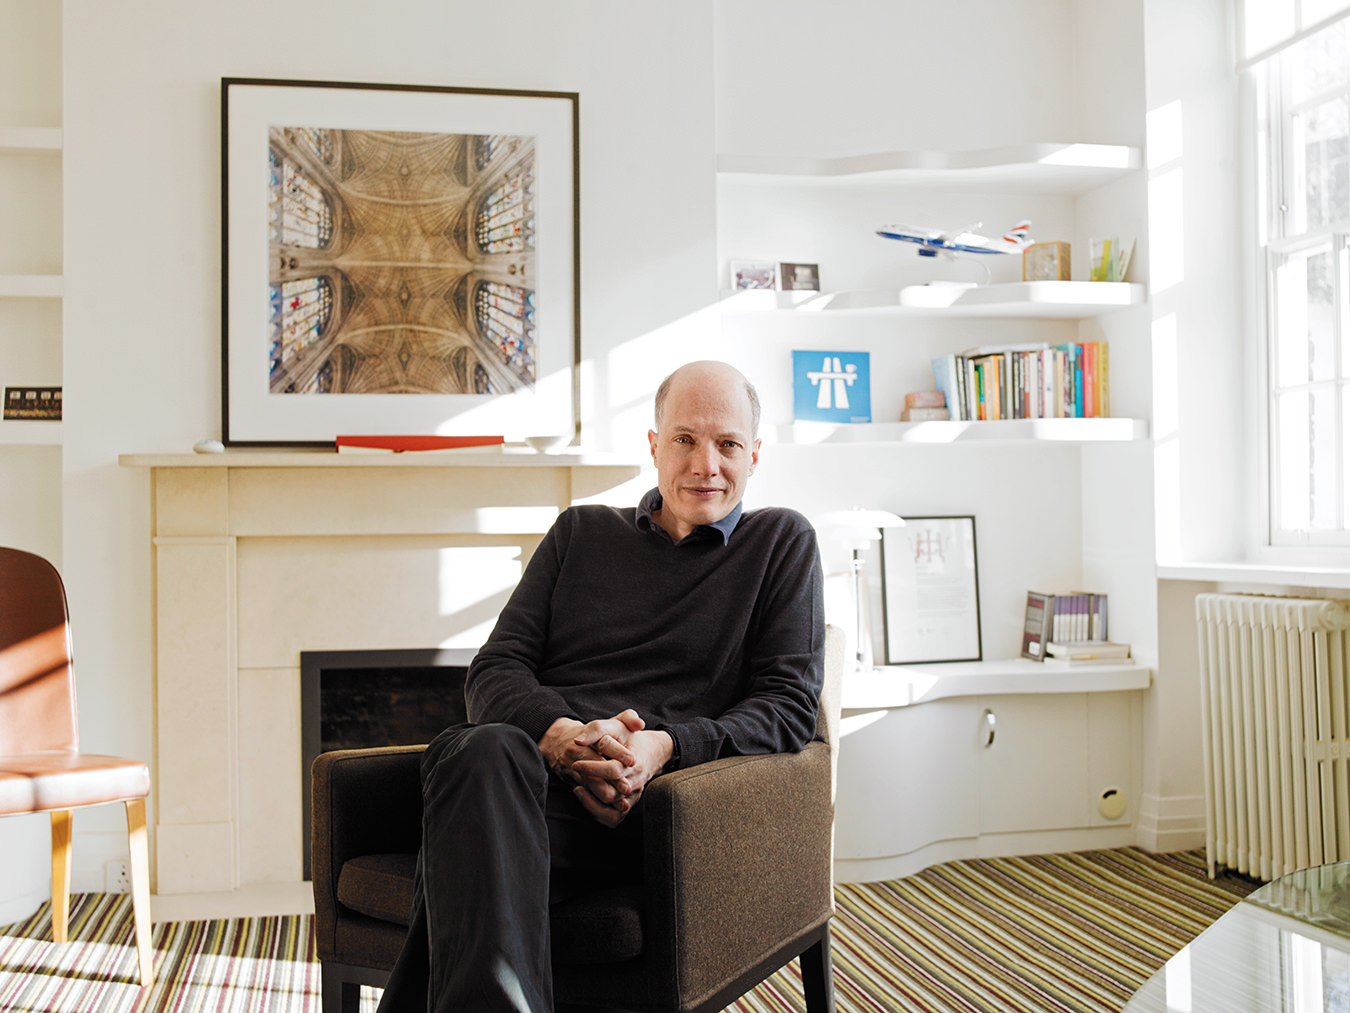 NUVO Summer 2016: Alain de Botton, Chronicle